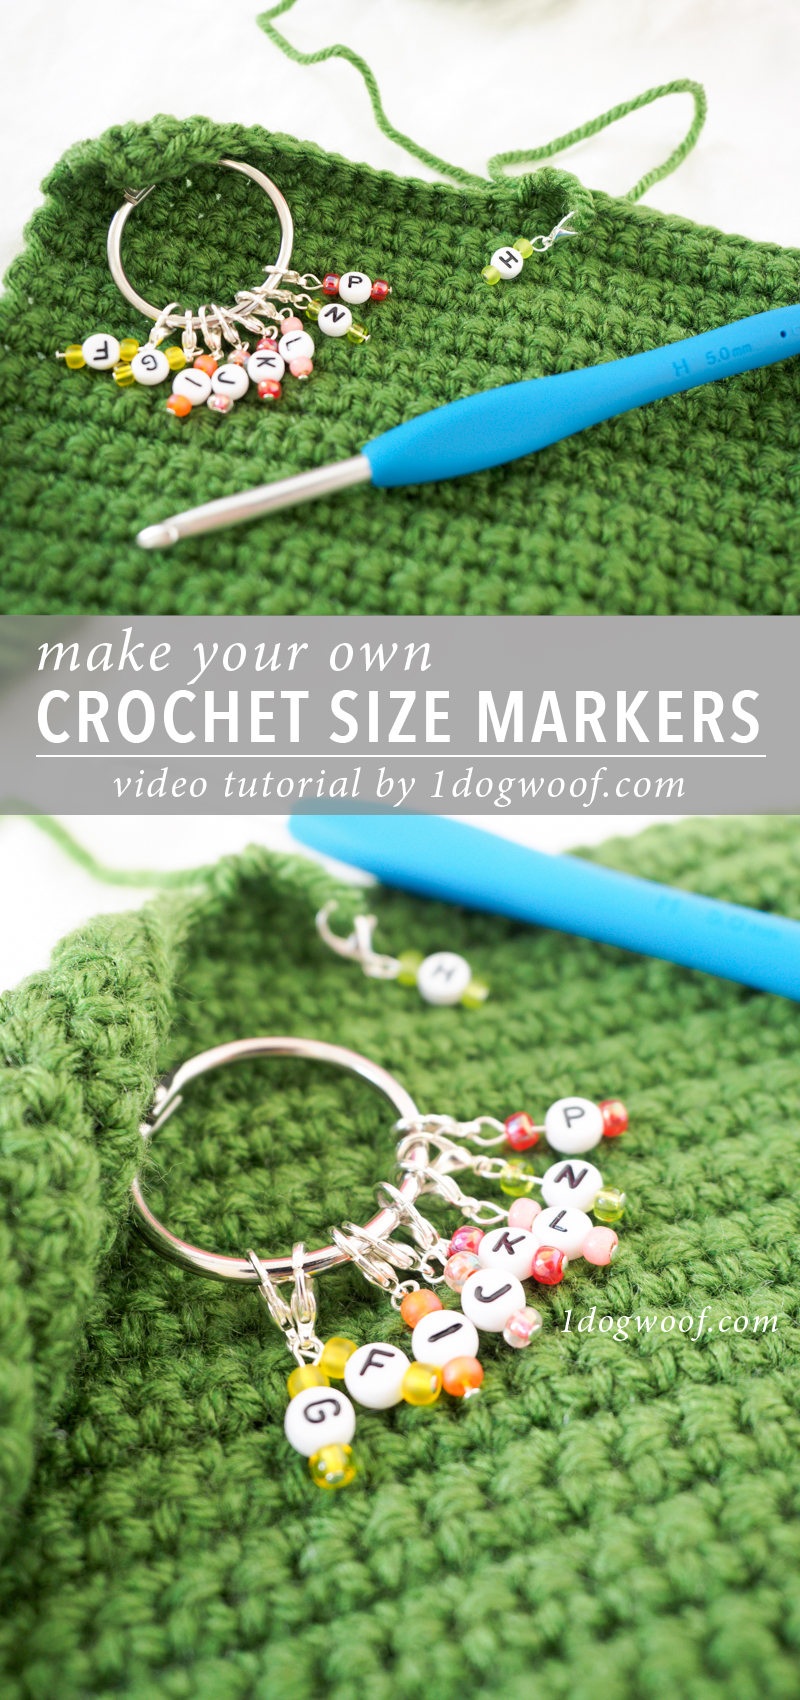 Make Your Own Crochet Size Markers pin image